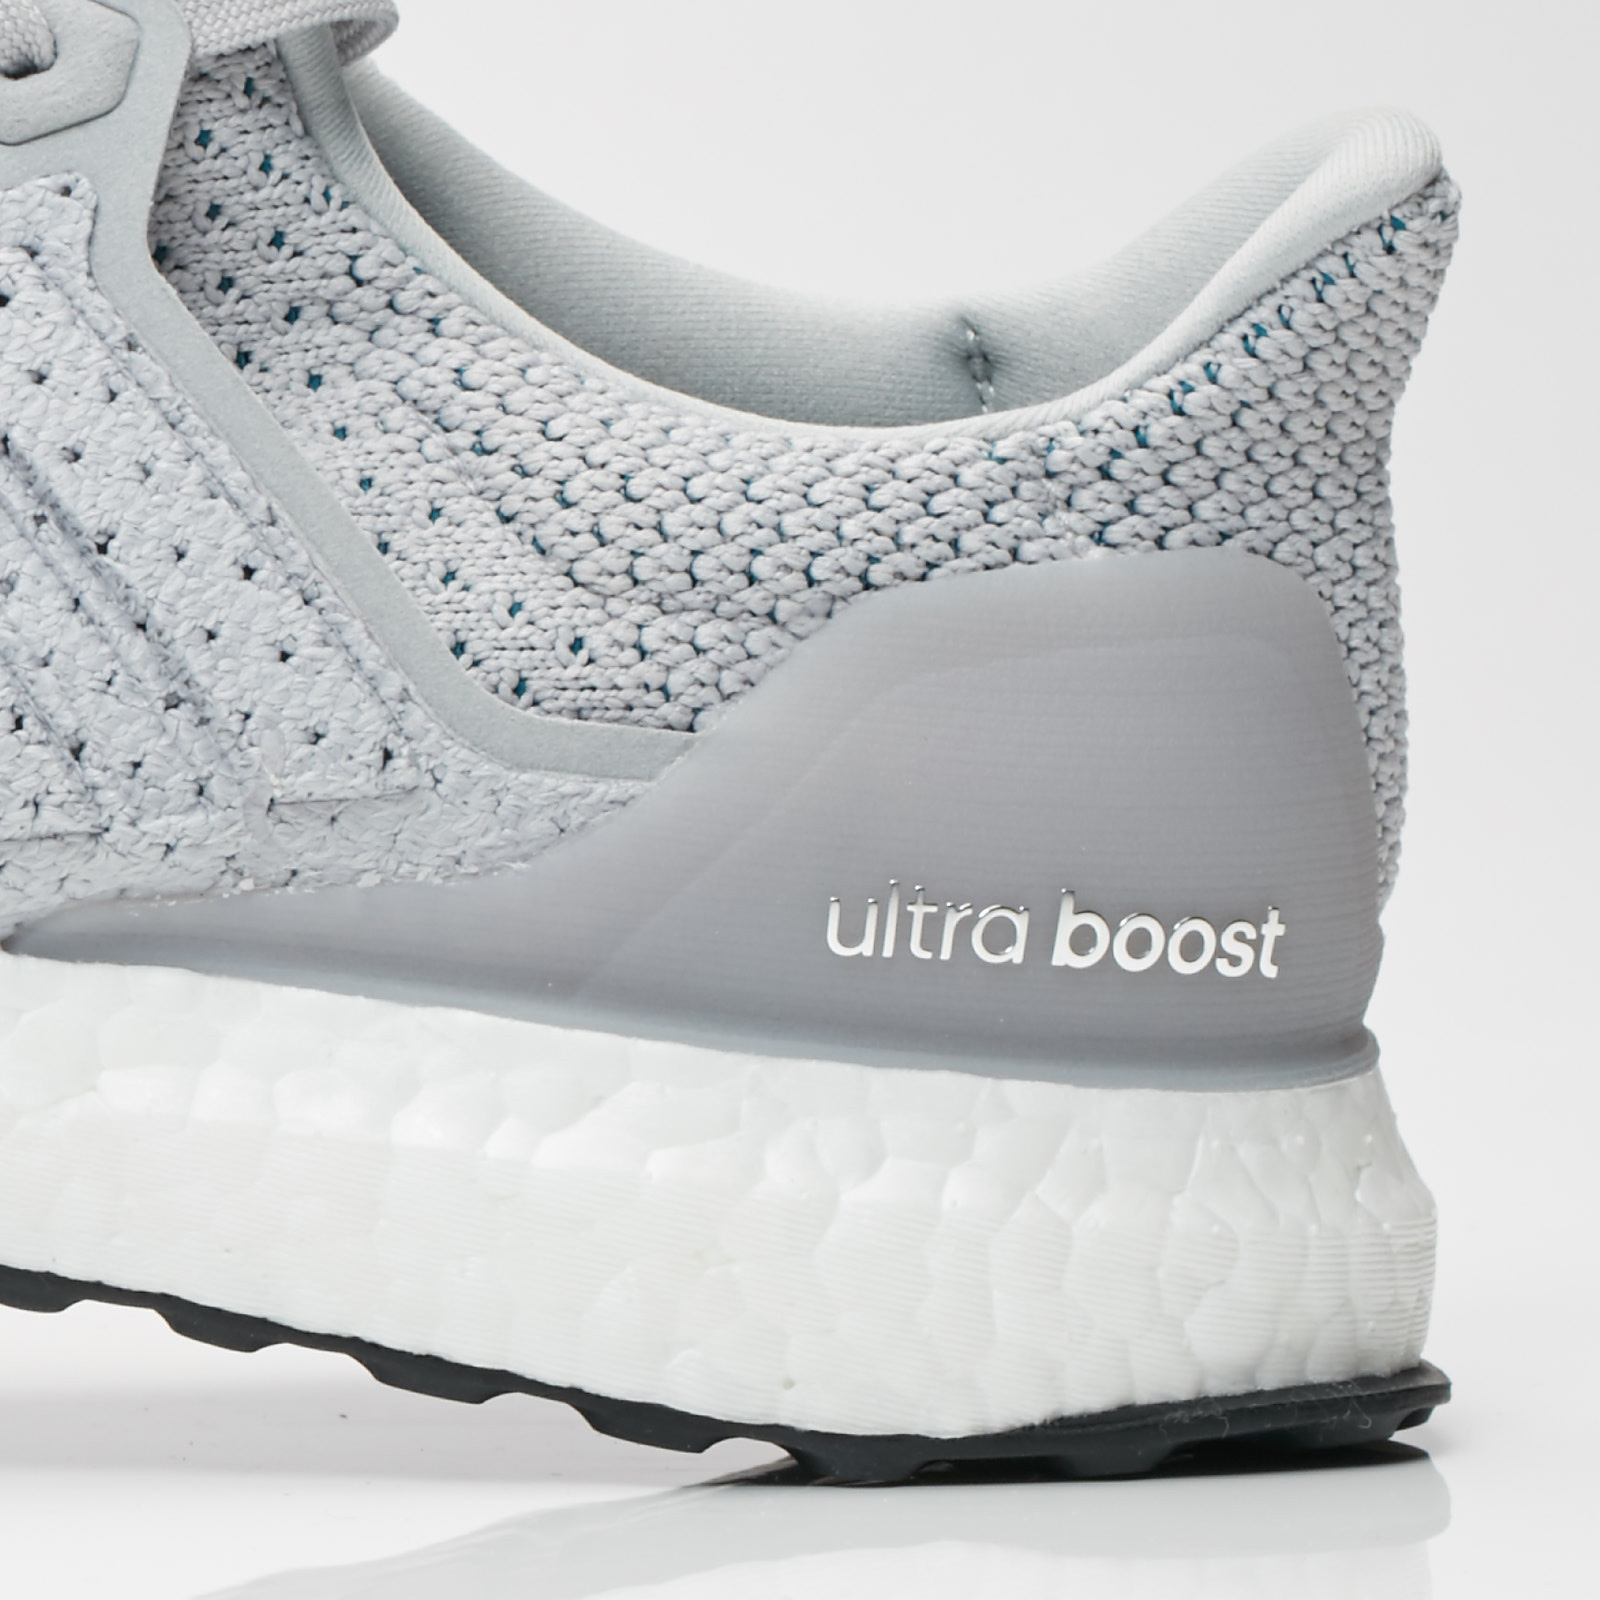 245dc272dc180 adidas UltraBOOST CLIMA - By8889 - Sneakersnstuff